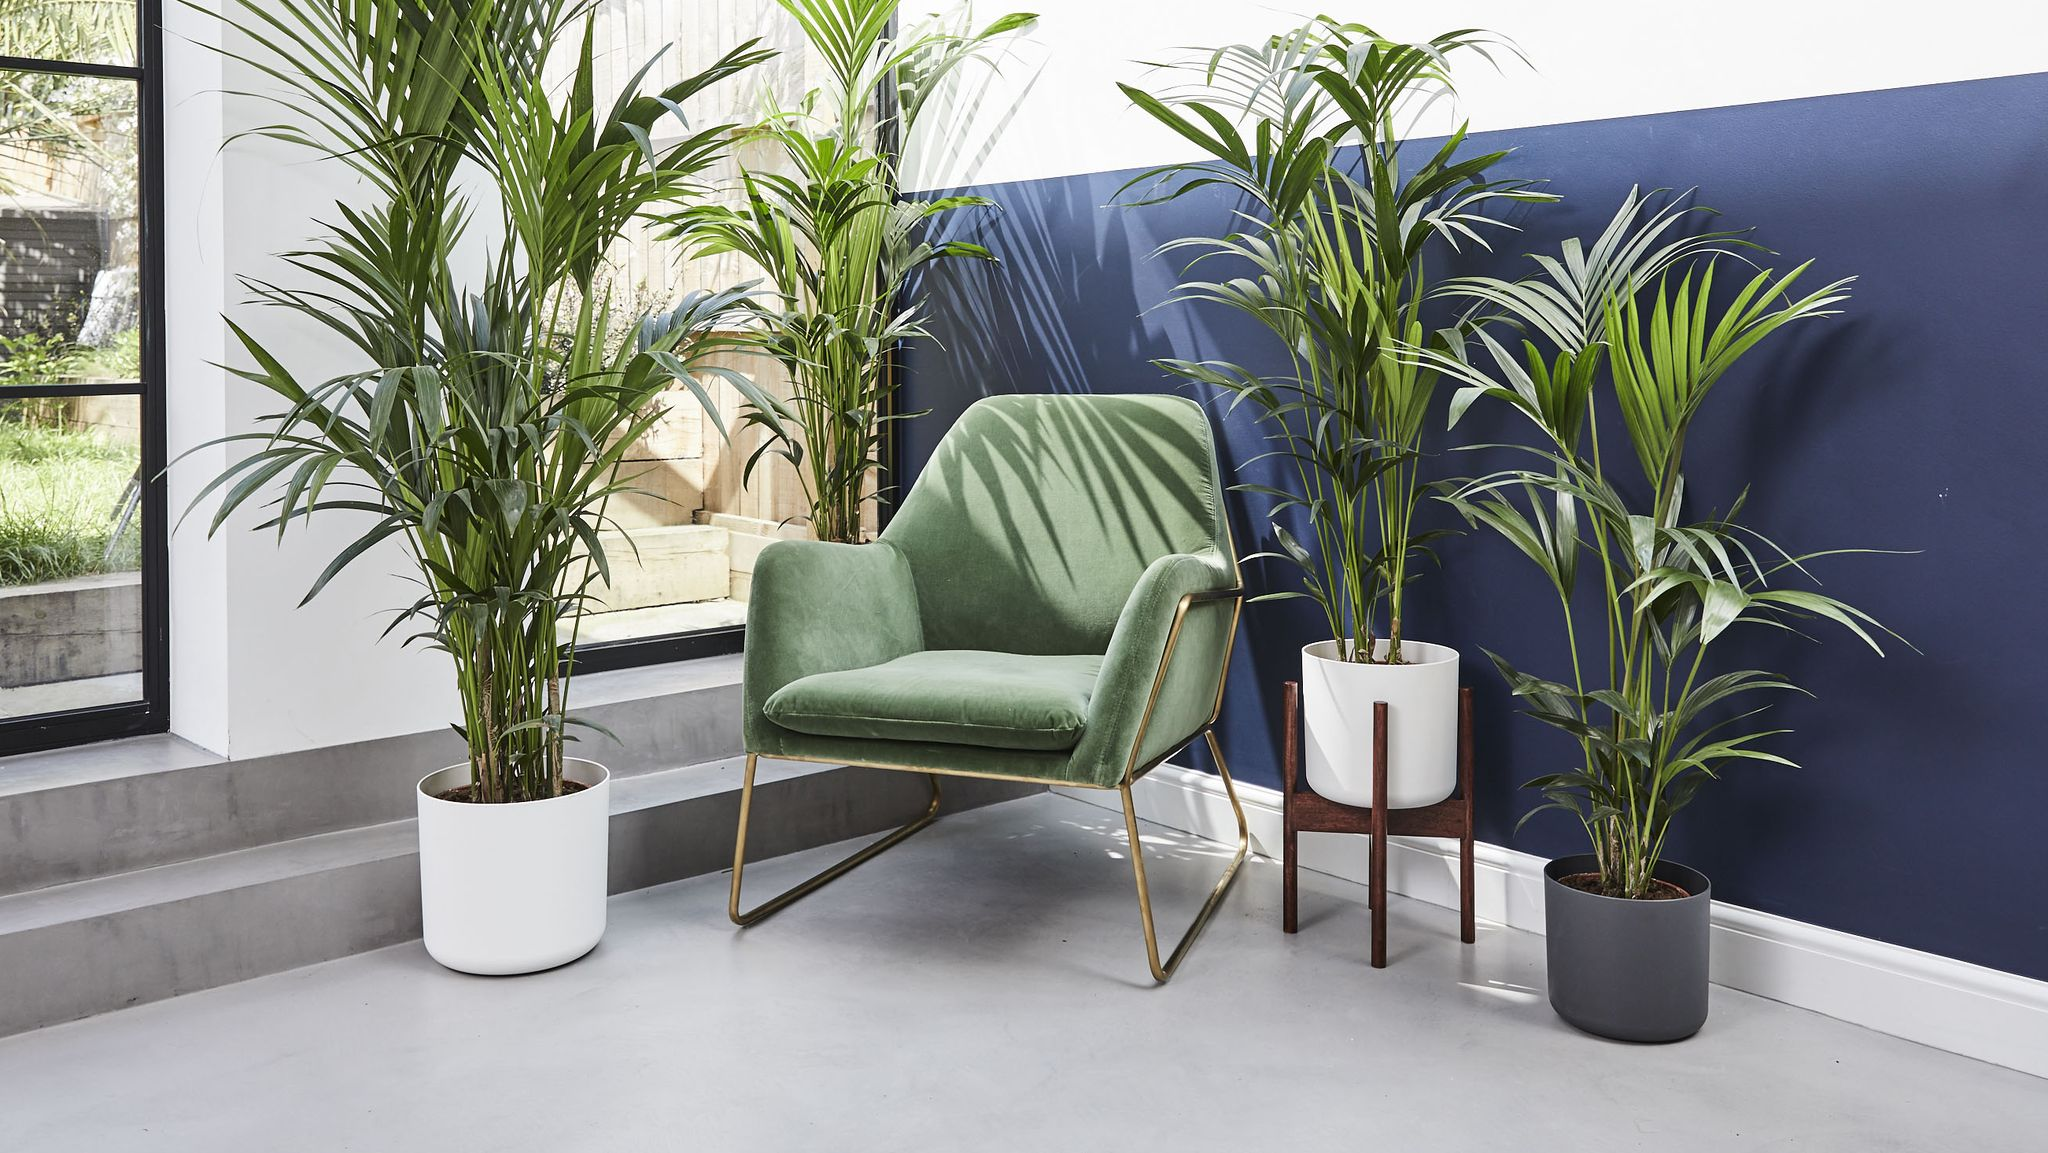 What's driving our obsession with indoor plants?